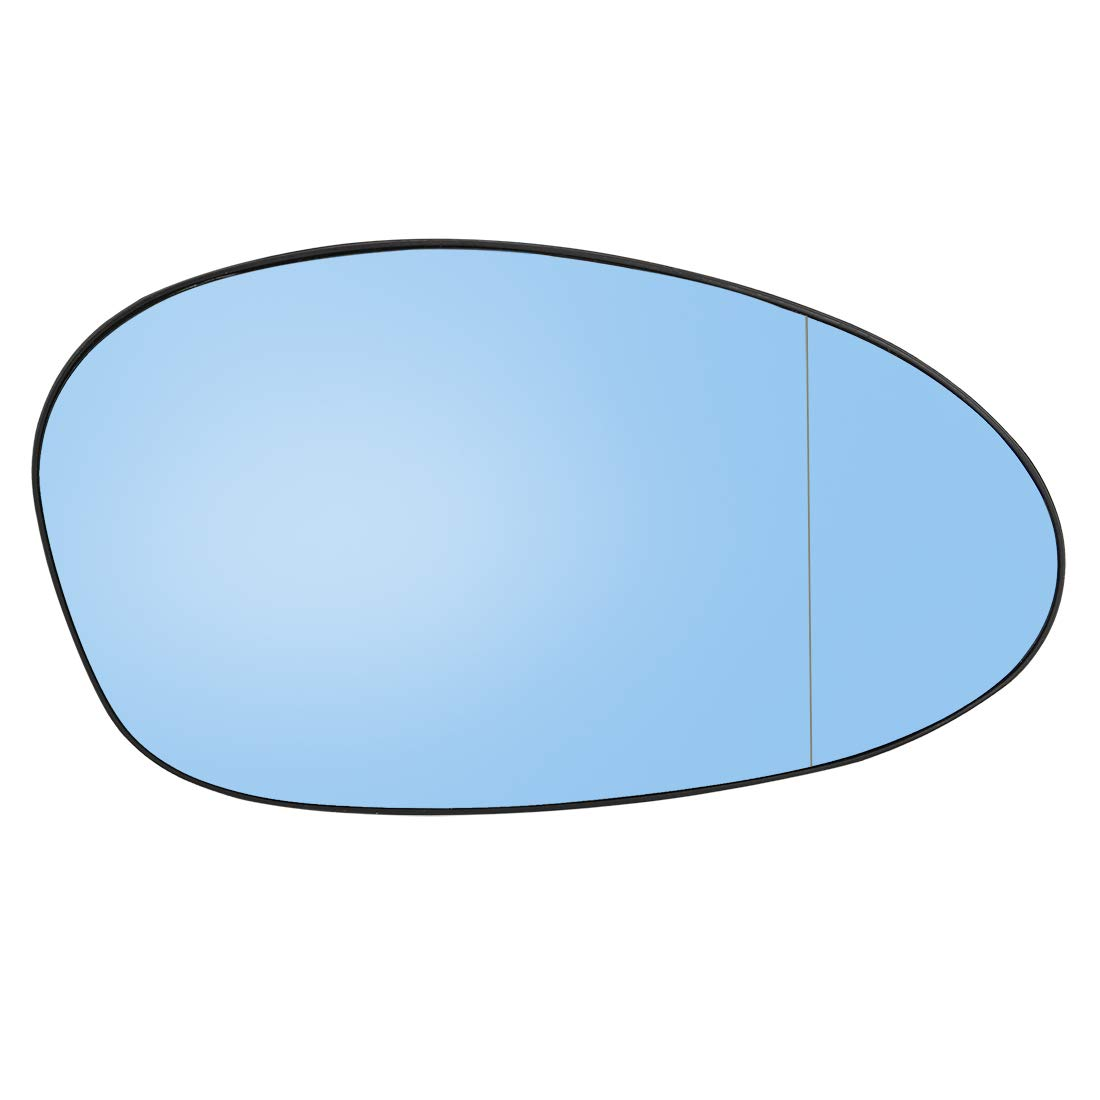 Mount Not Included 330i 330xi 2006-2009 BMW 323i for 2006 BMW 325i 325xi See Full Fitment List In Description Burco 4074 Flat Driver Side Power Replacement Mirror Glass